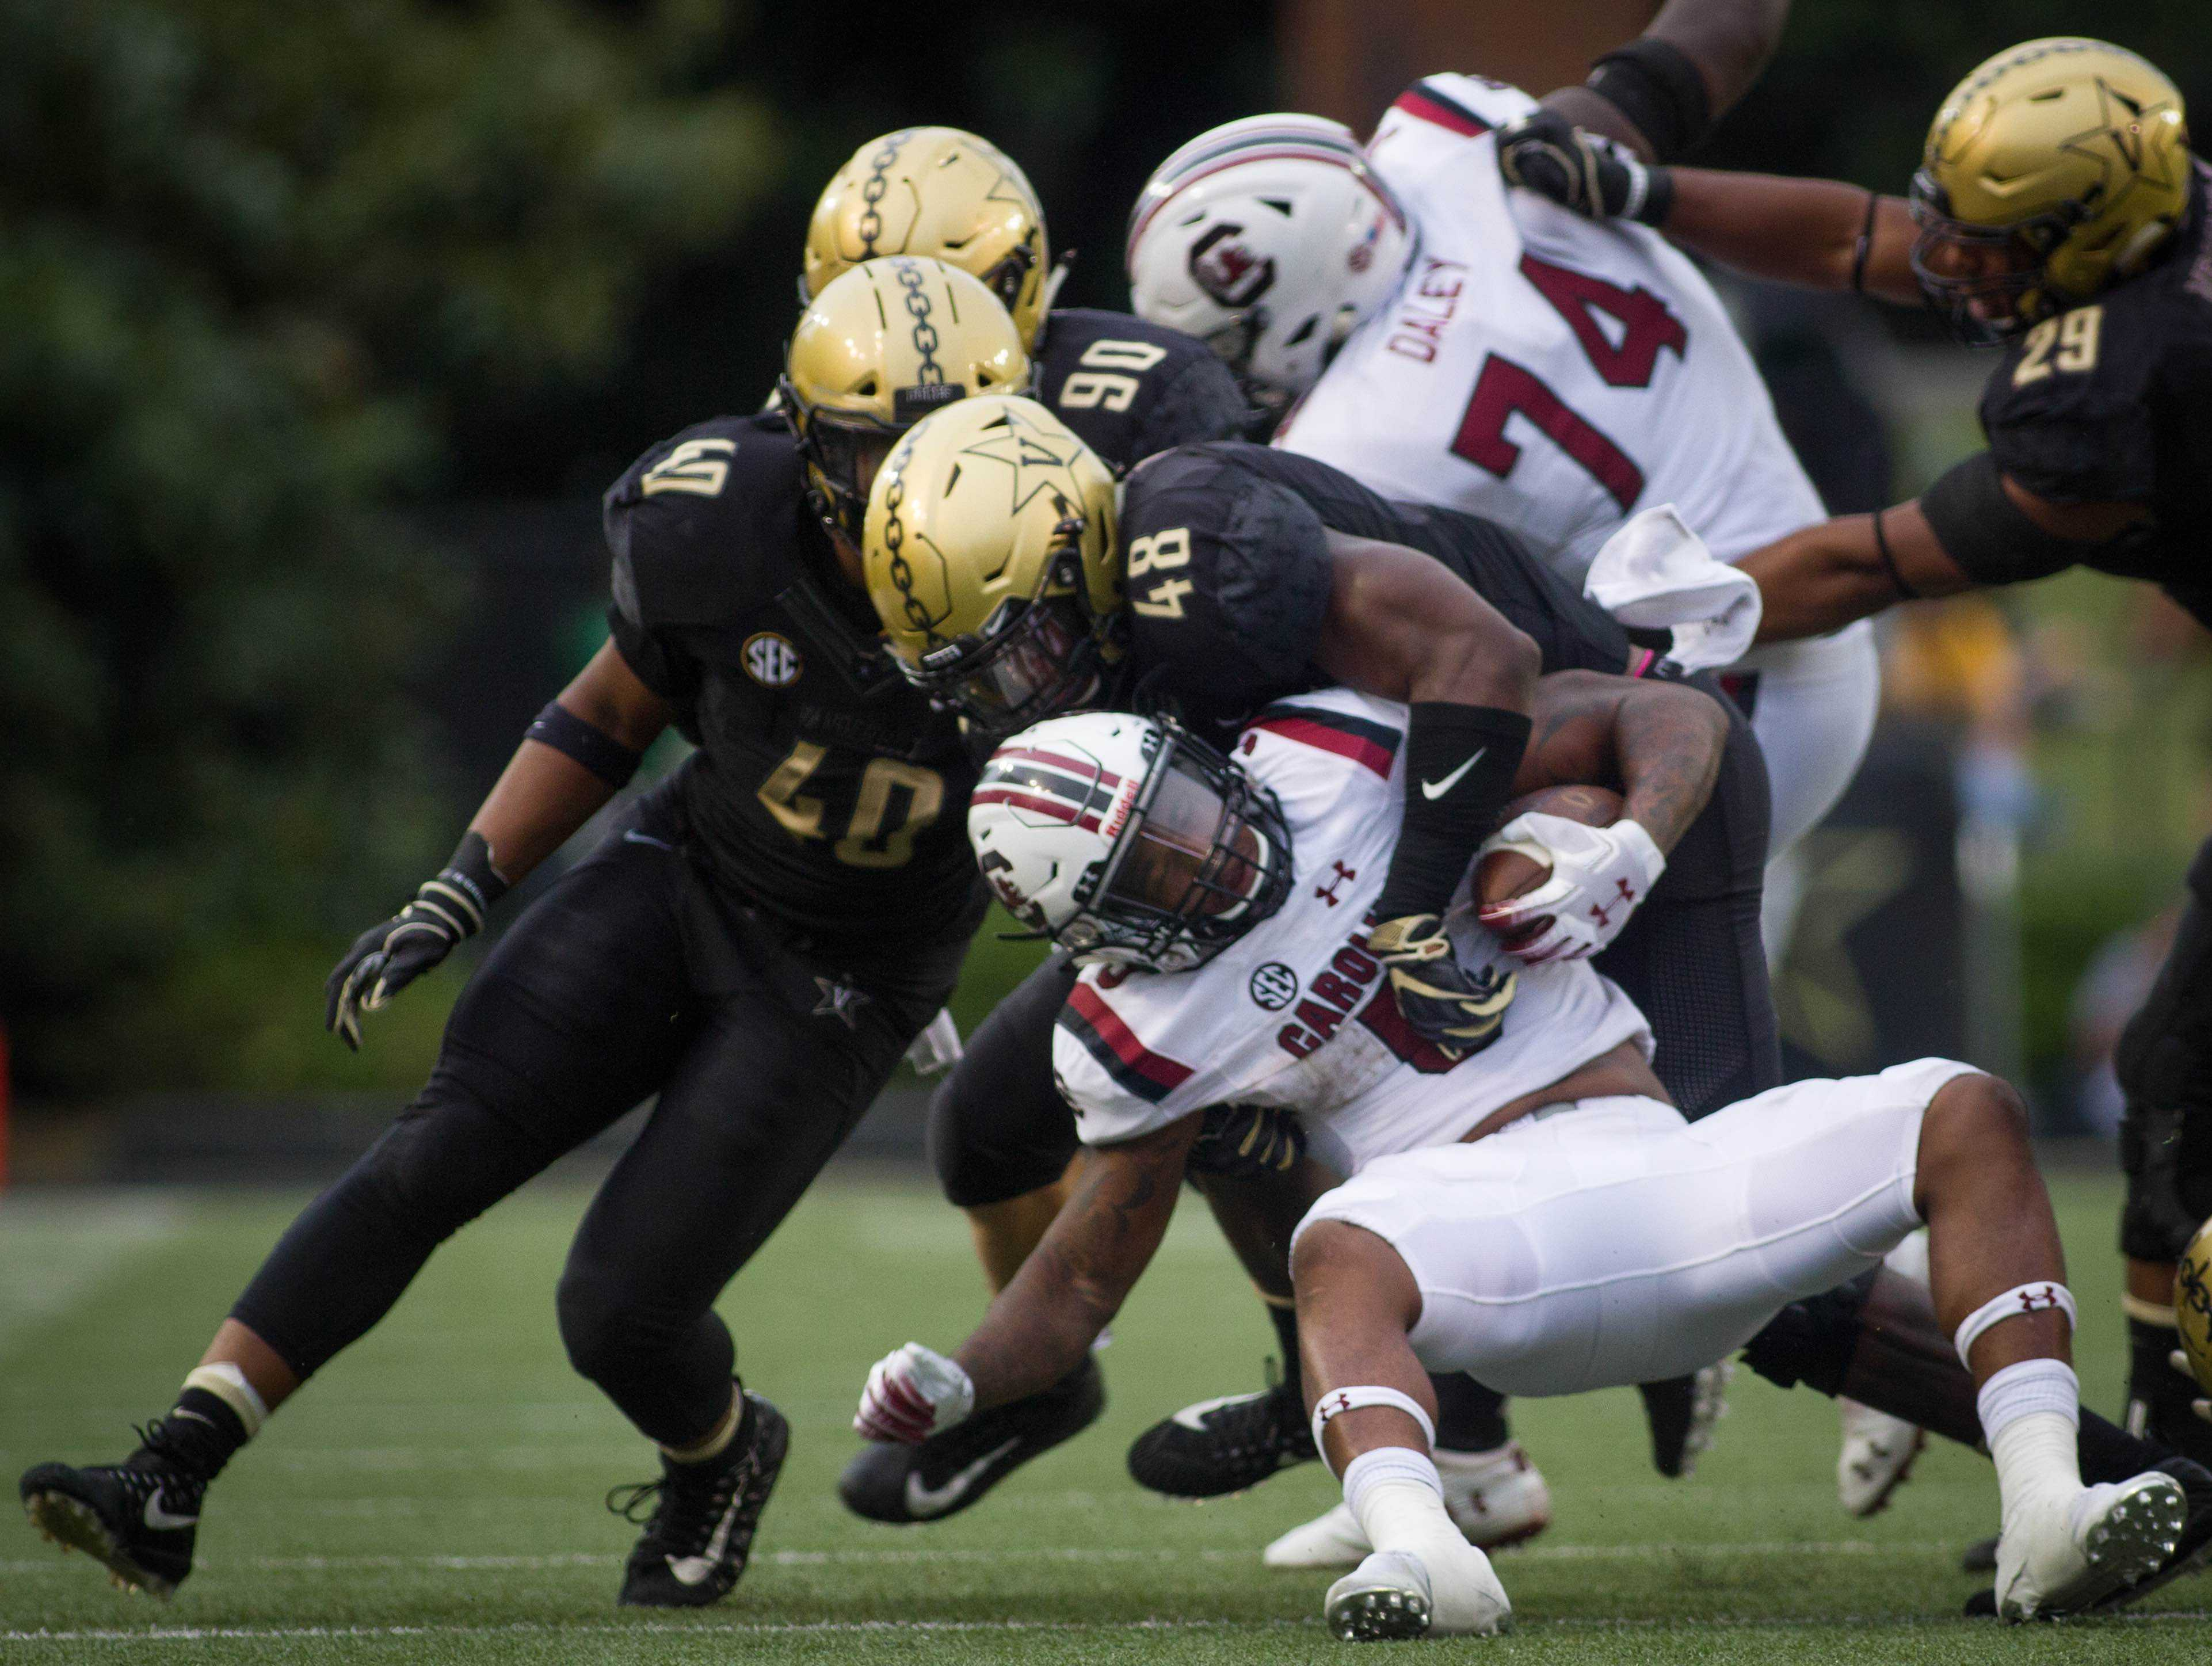 Vanderbilt plays South Carolina on Saturday, September 22, 2018. (Photo by Hunter Long)